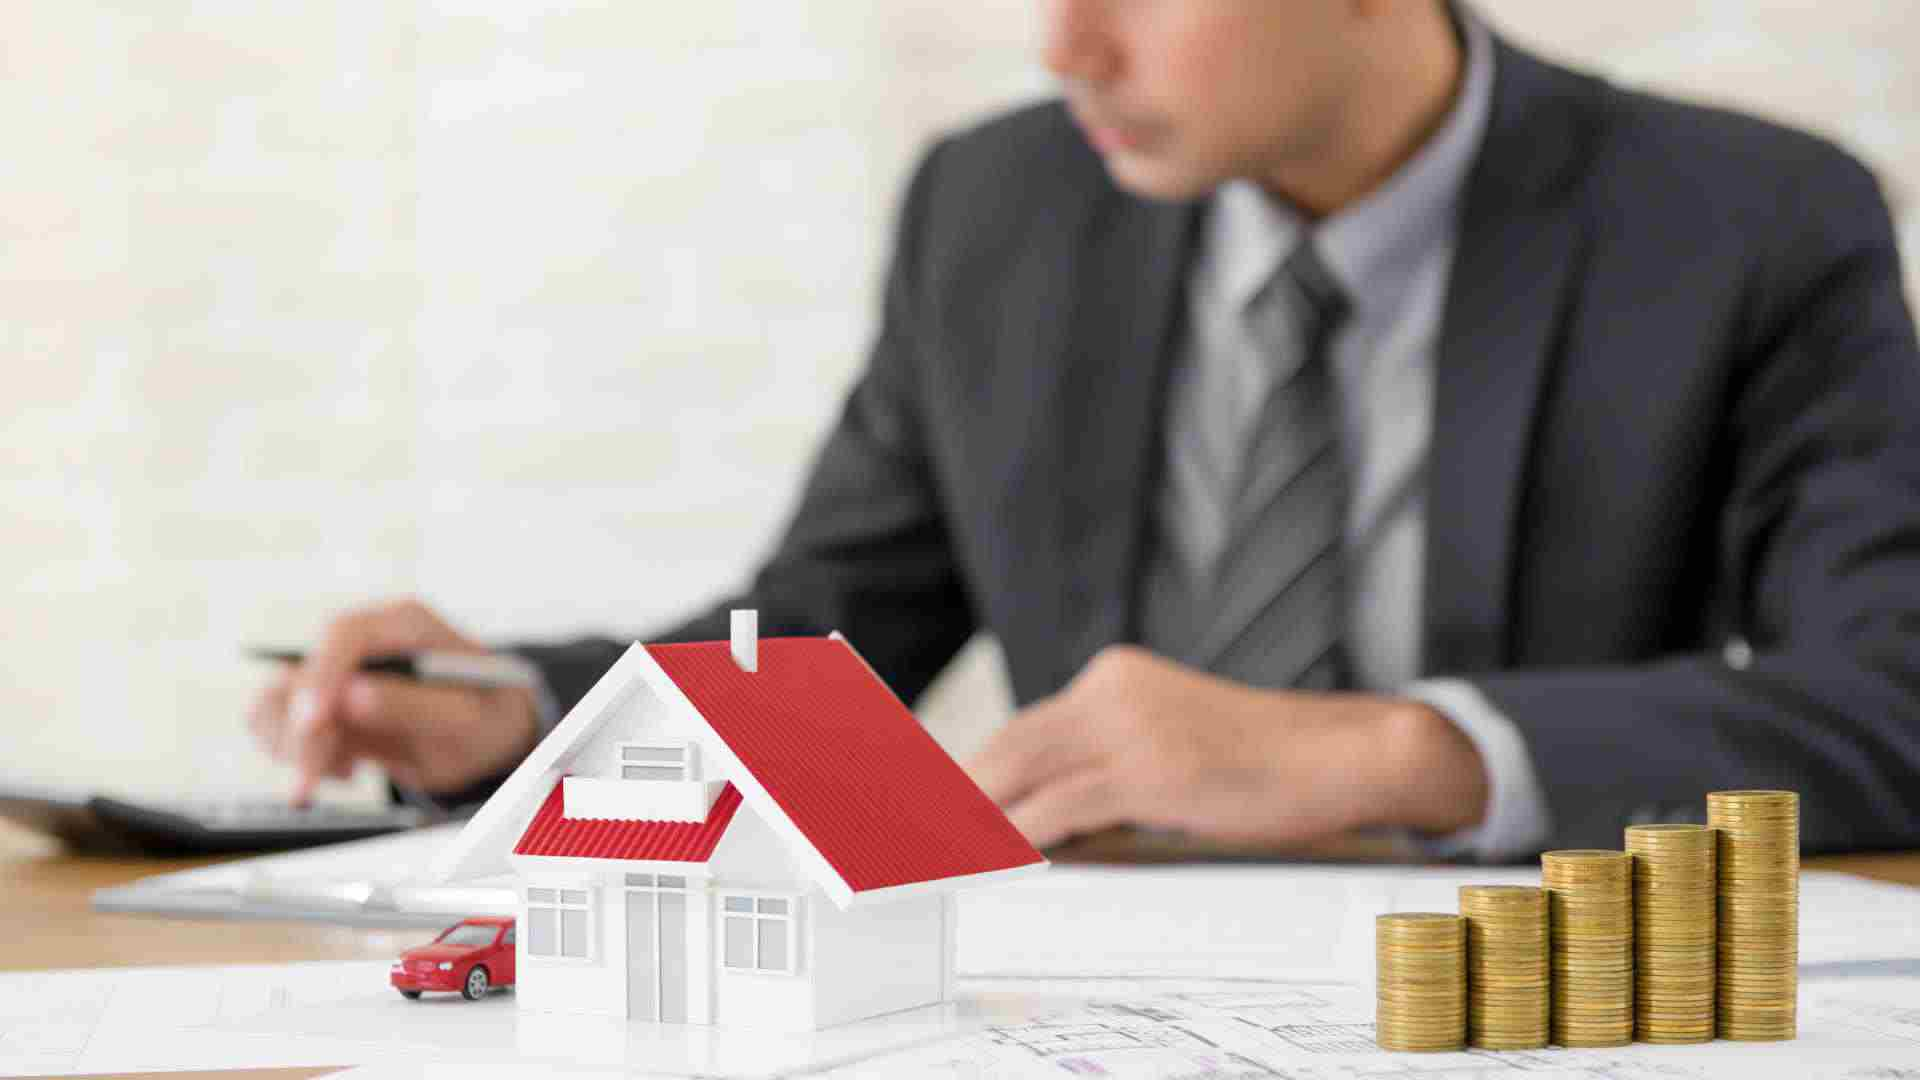 Investors continue to pounce on property markets